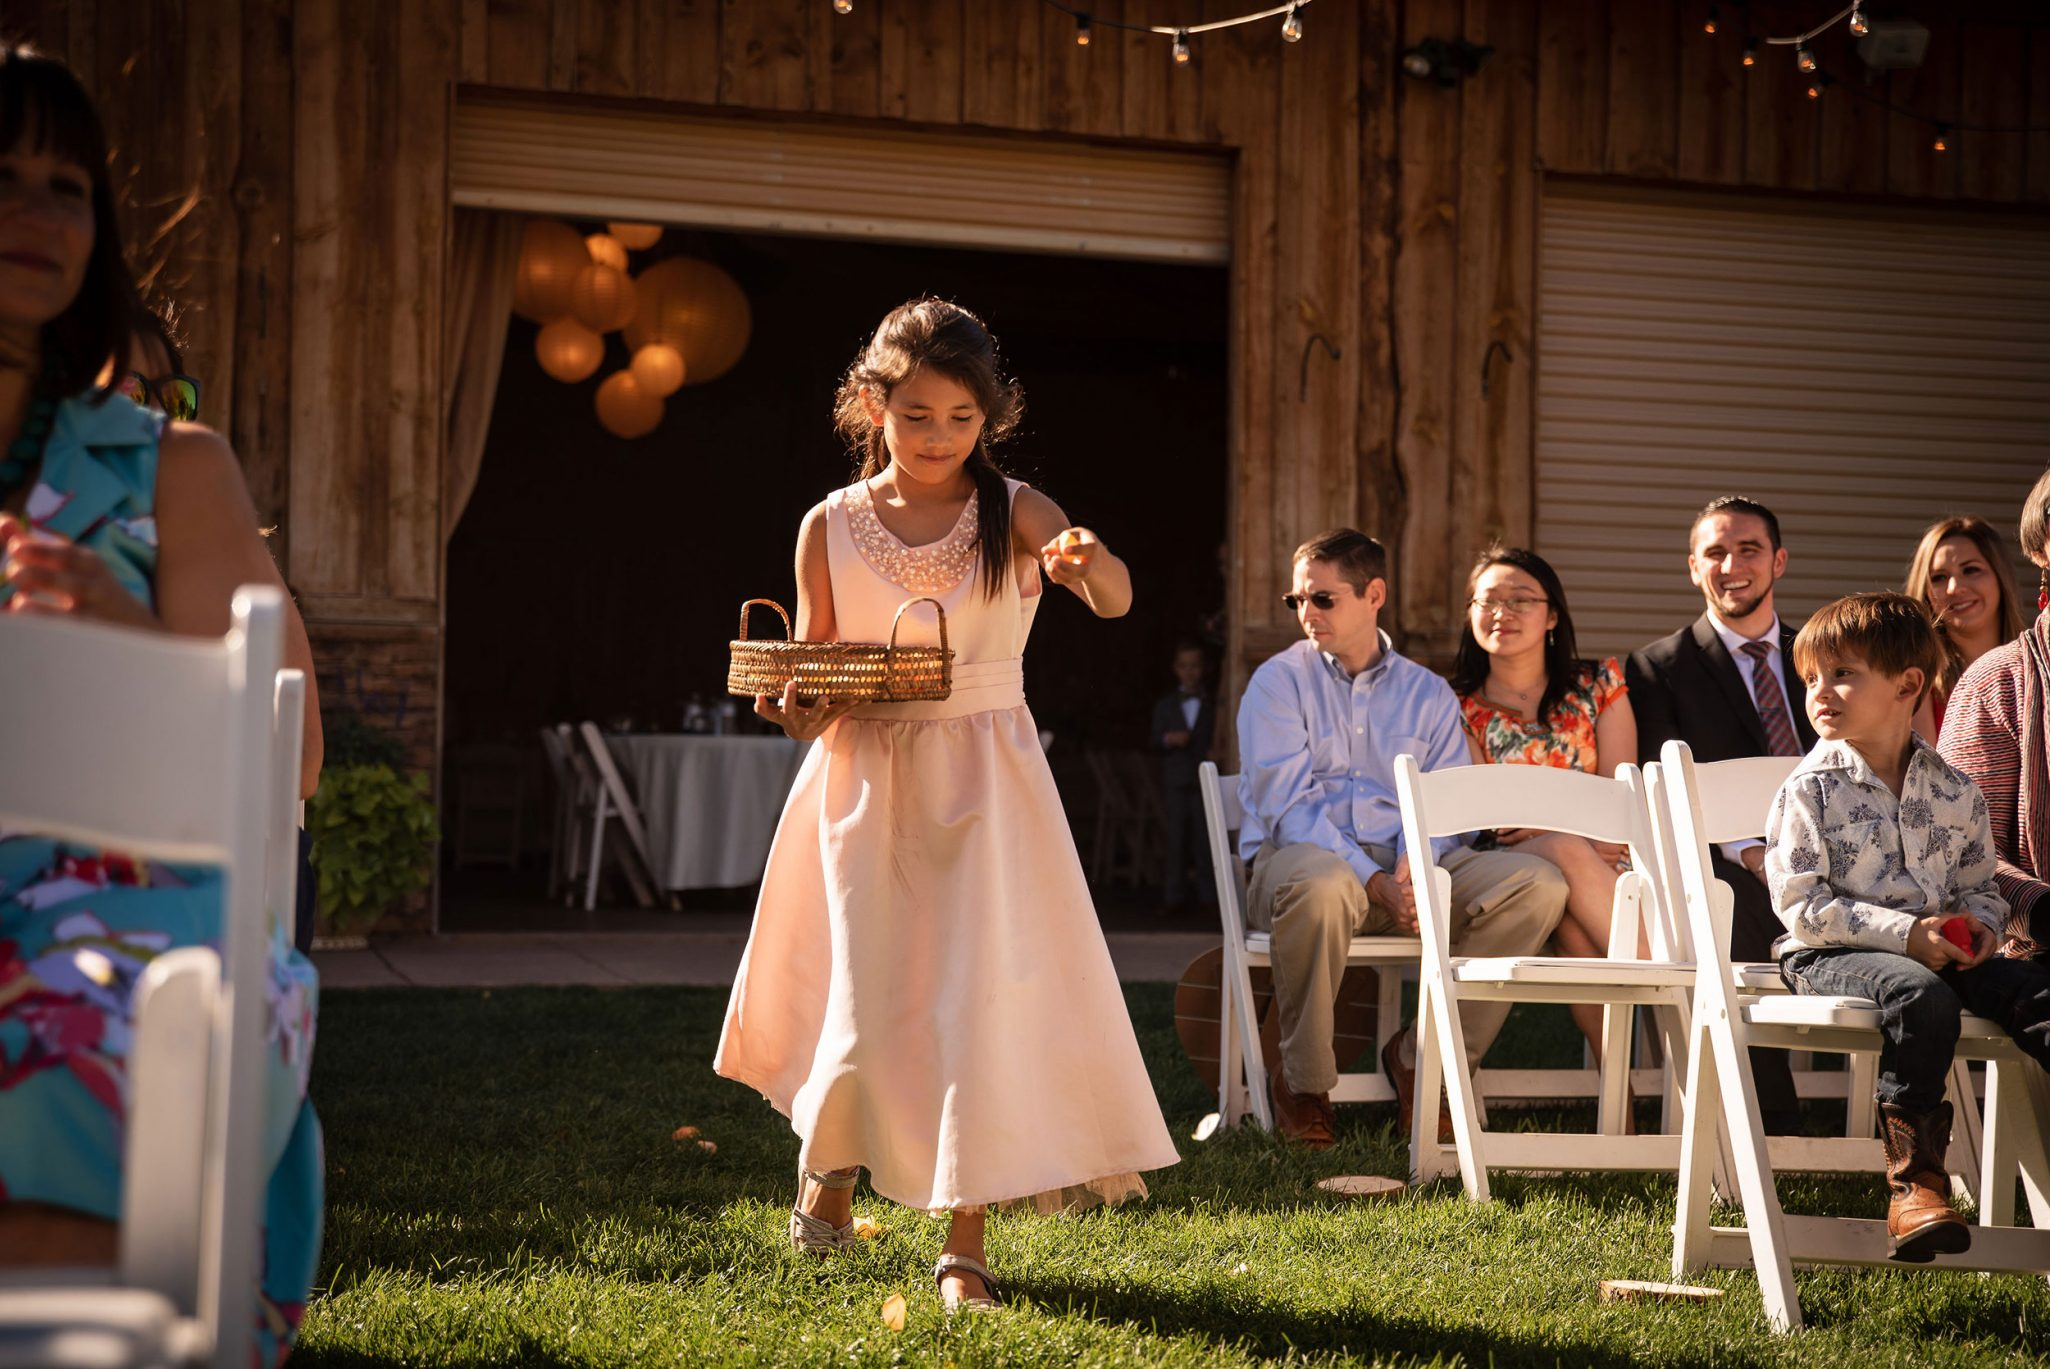 Flower girl walking down the aisle | Durango Weddings Magazine